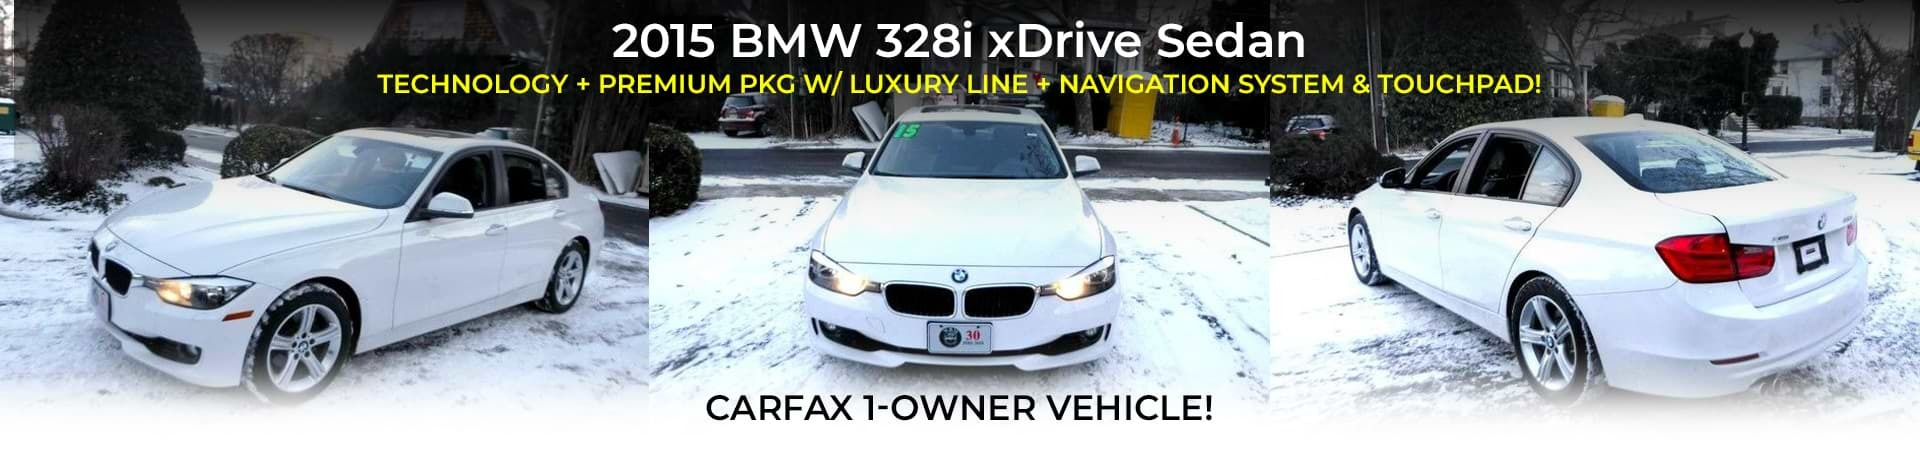 2015 BMW 328i at WBM of Arlington